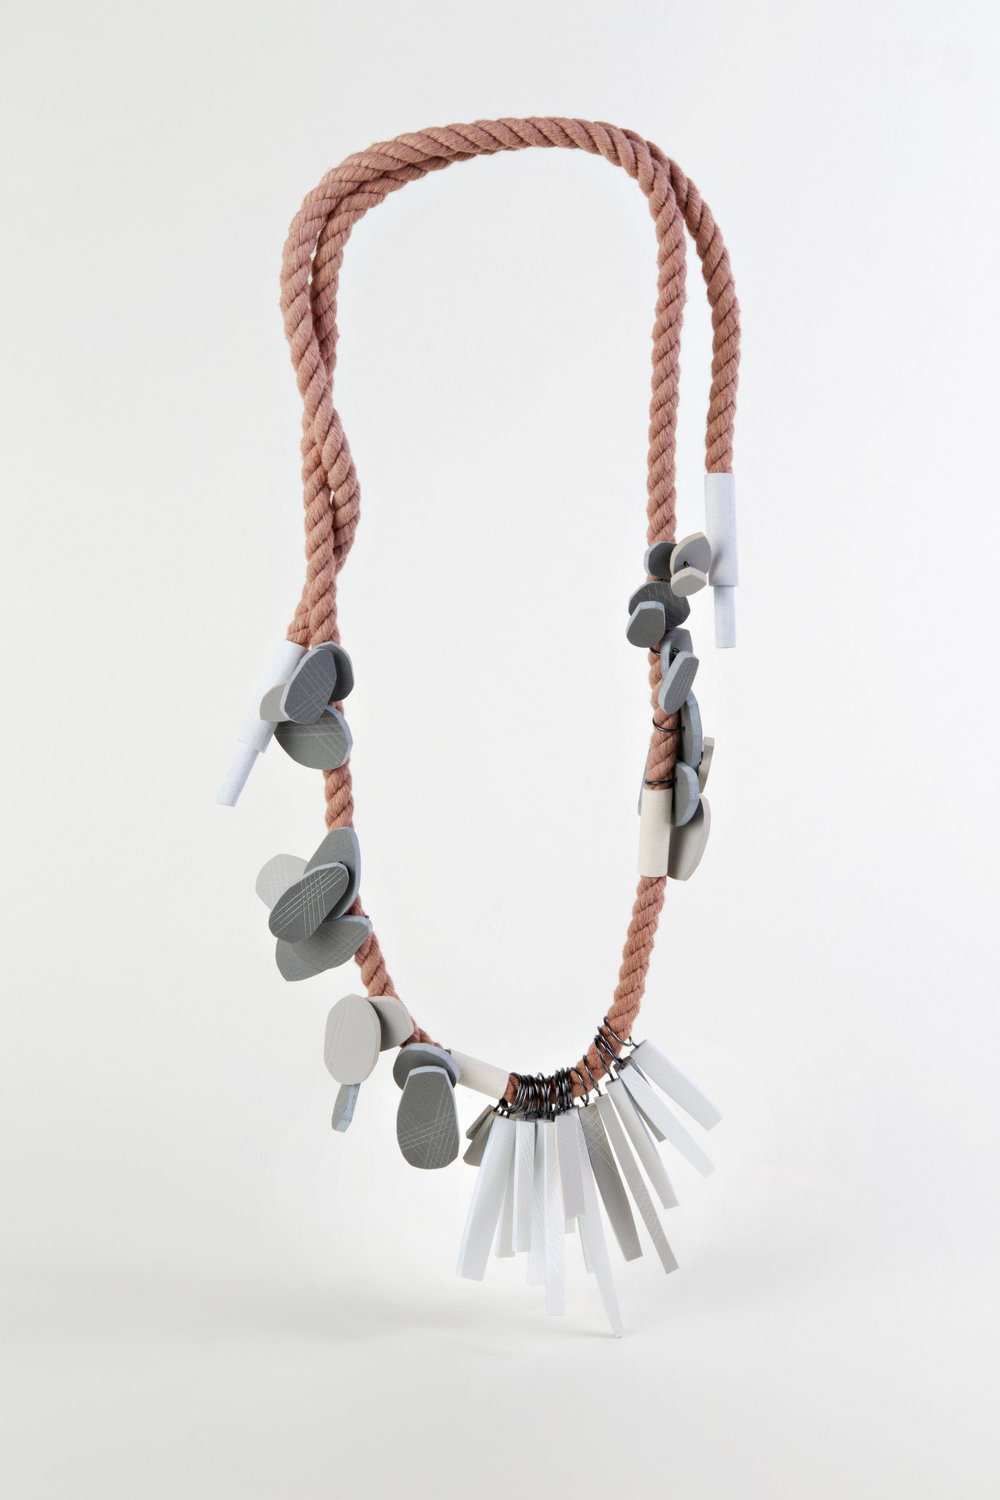 Clustered Nuggets and Straws, PVC, silver, rope